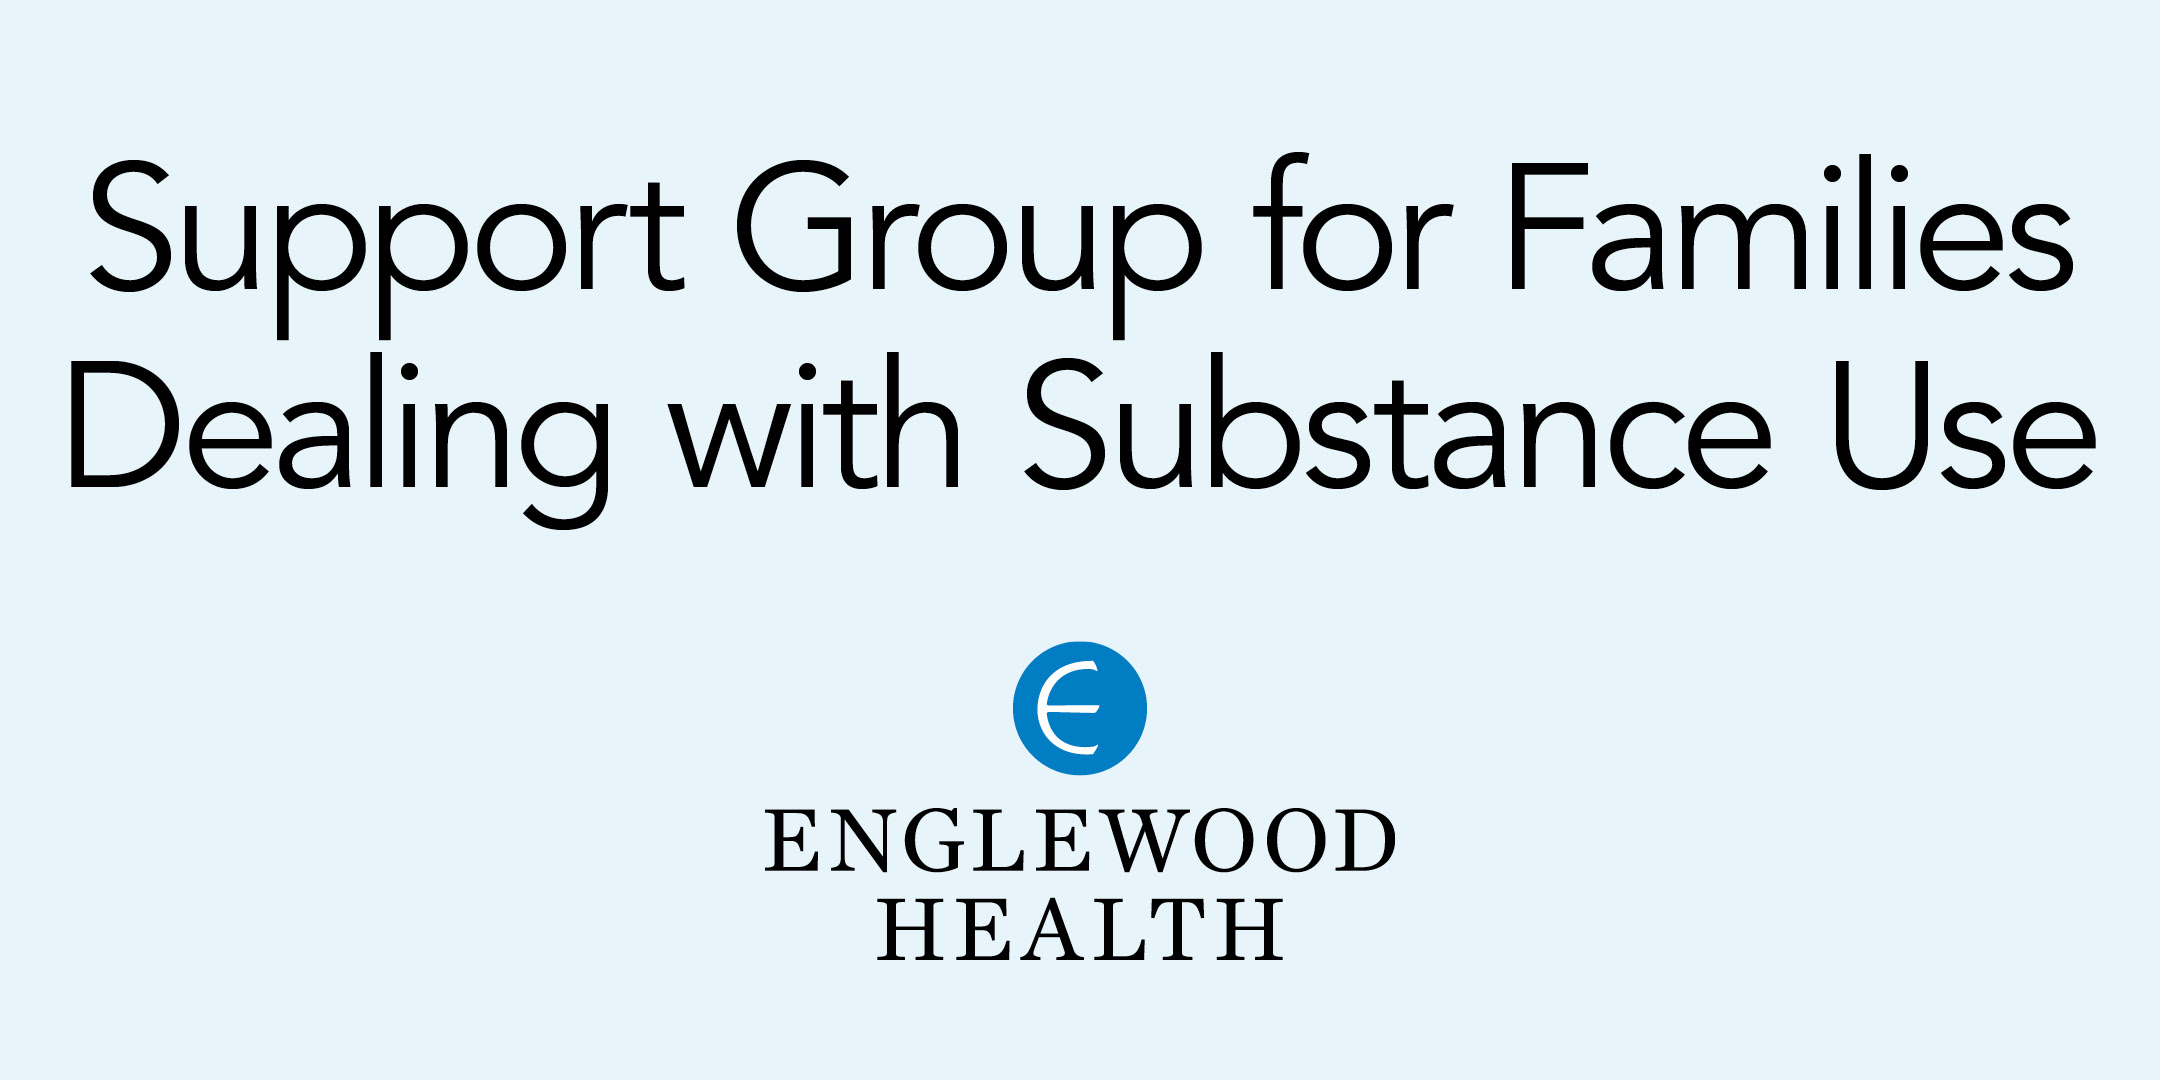 Support Group for Families Dealing with Substance Use